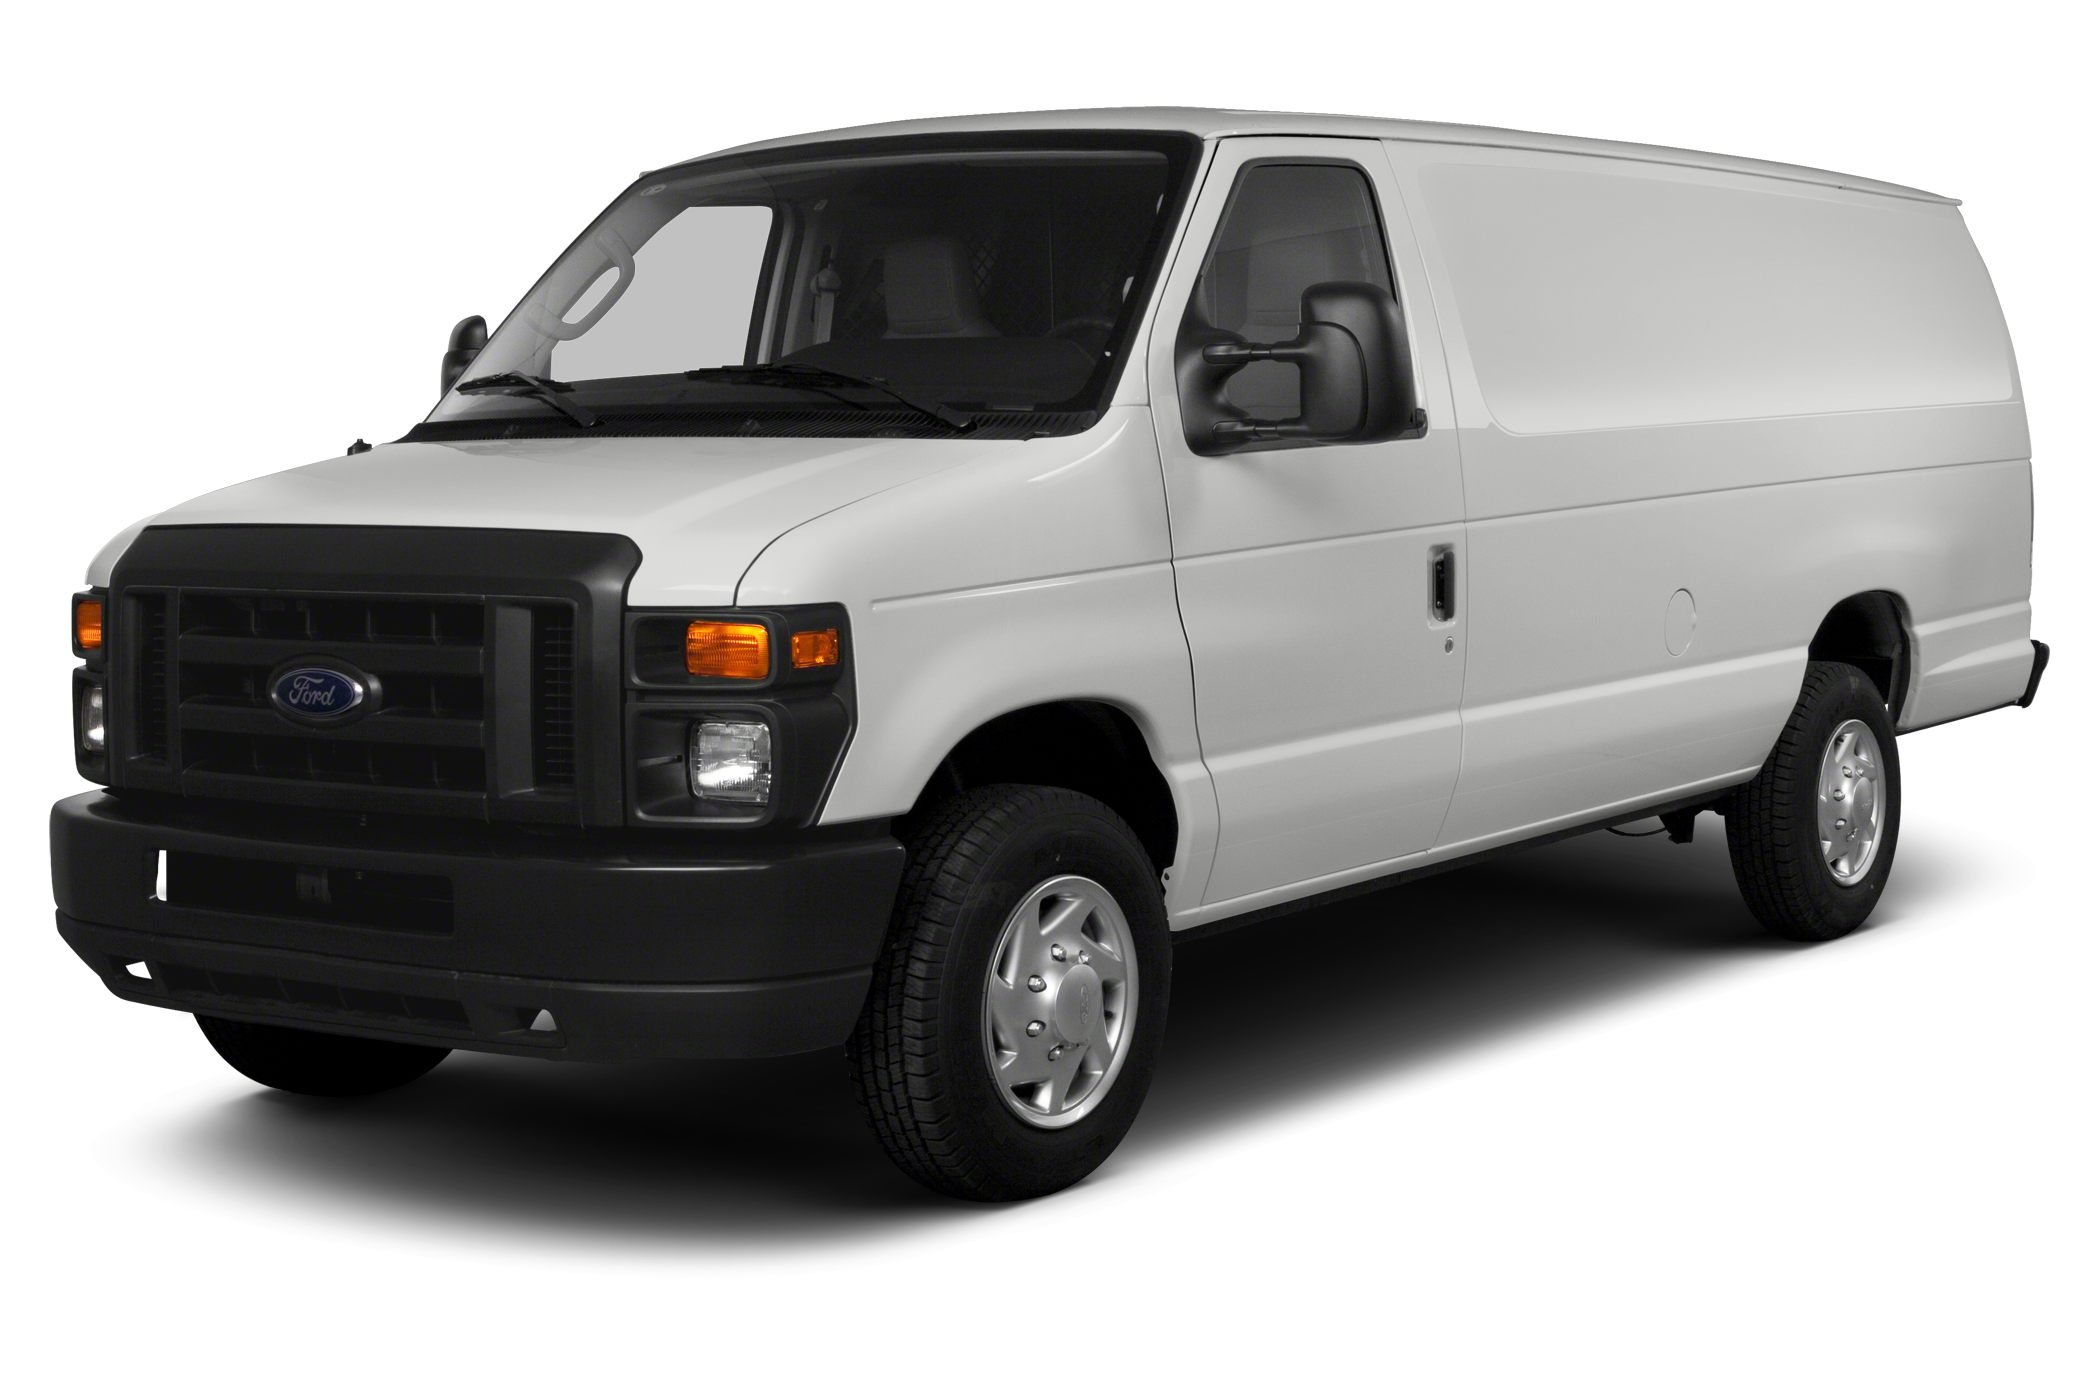 2014 Ford Econoline 250 Commercial Certfied by CARFAX - NO ACCIDENTS and ONE OWNER Flex Fuel